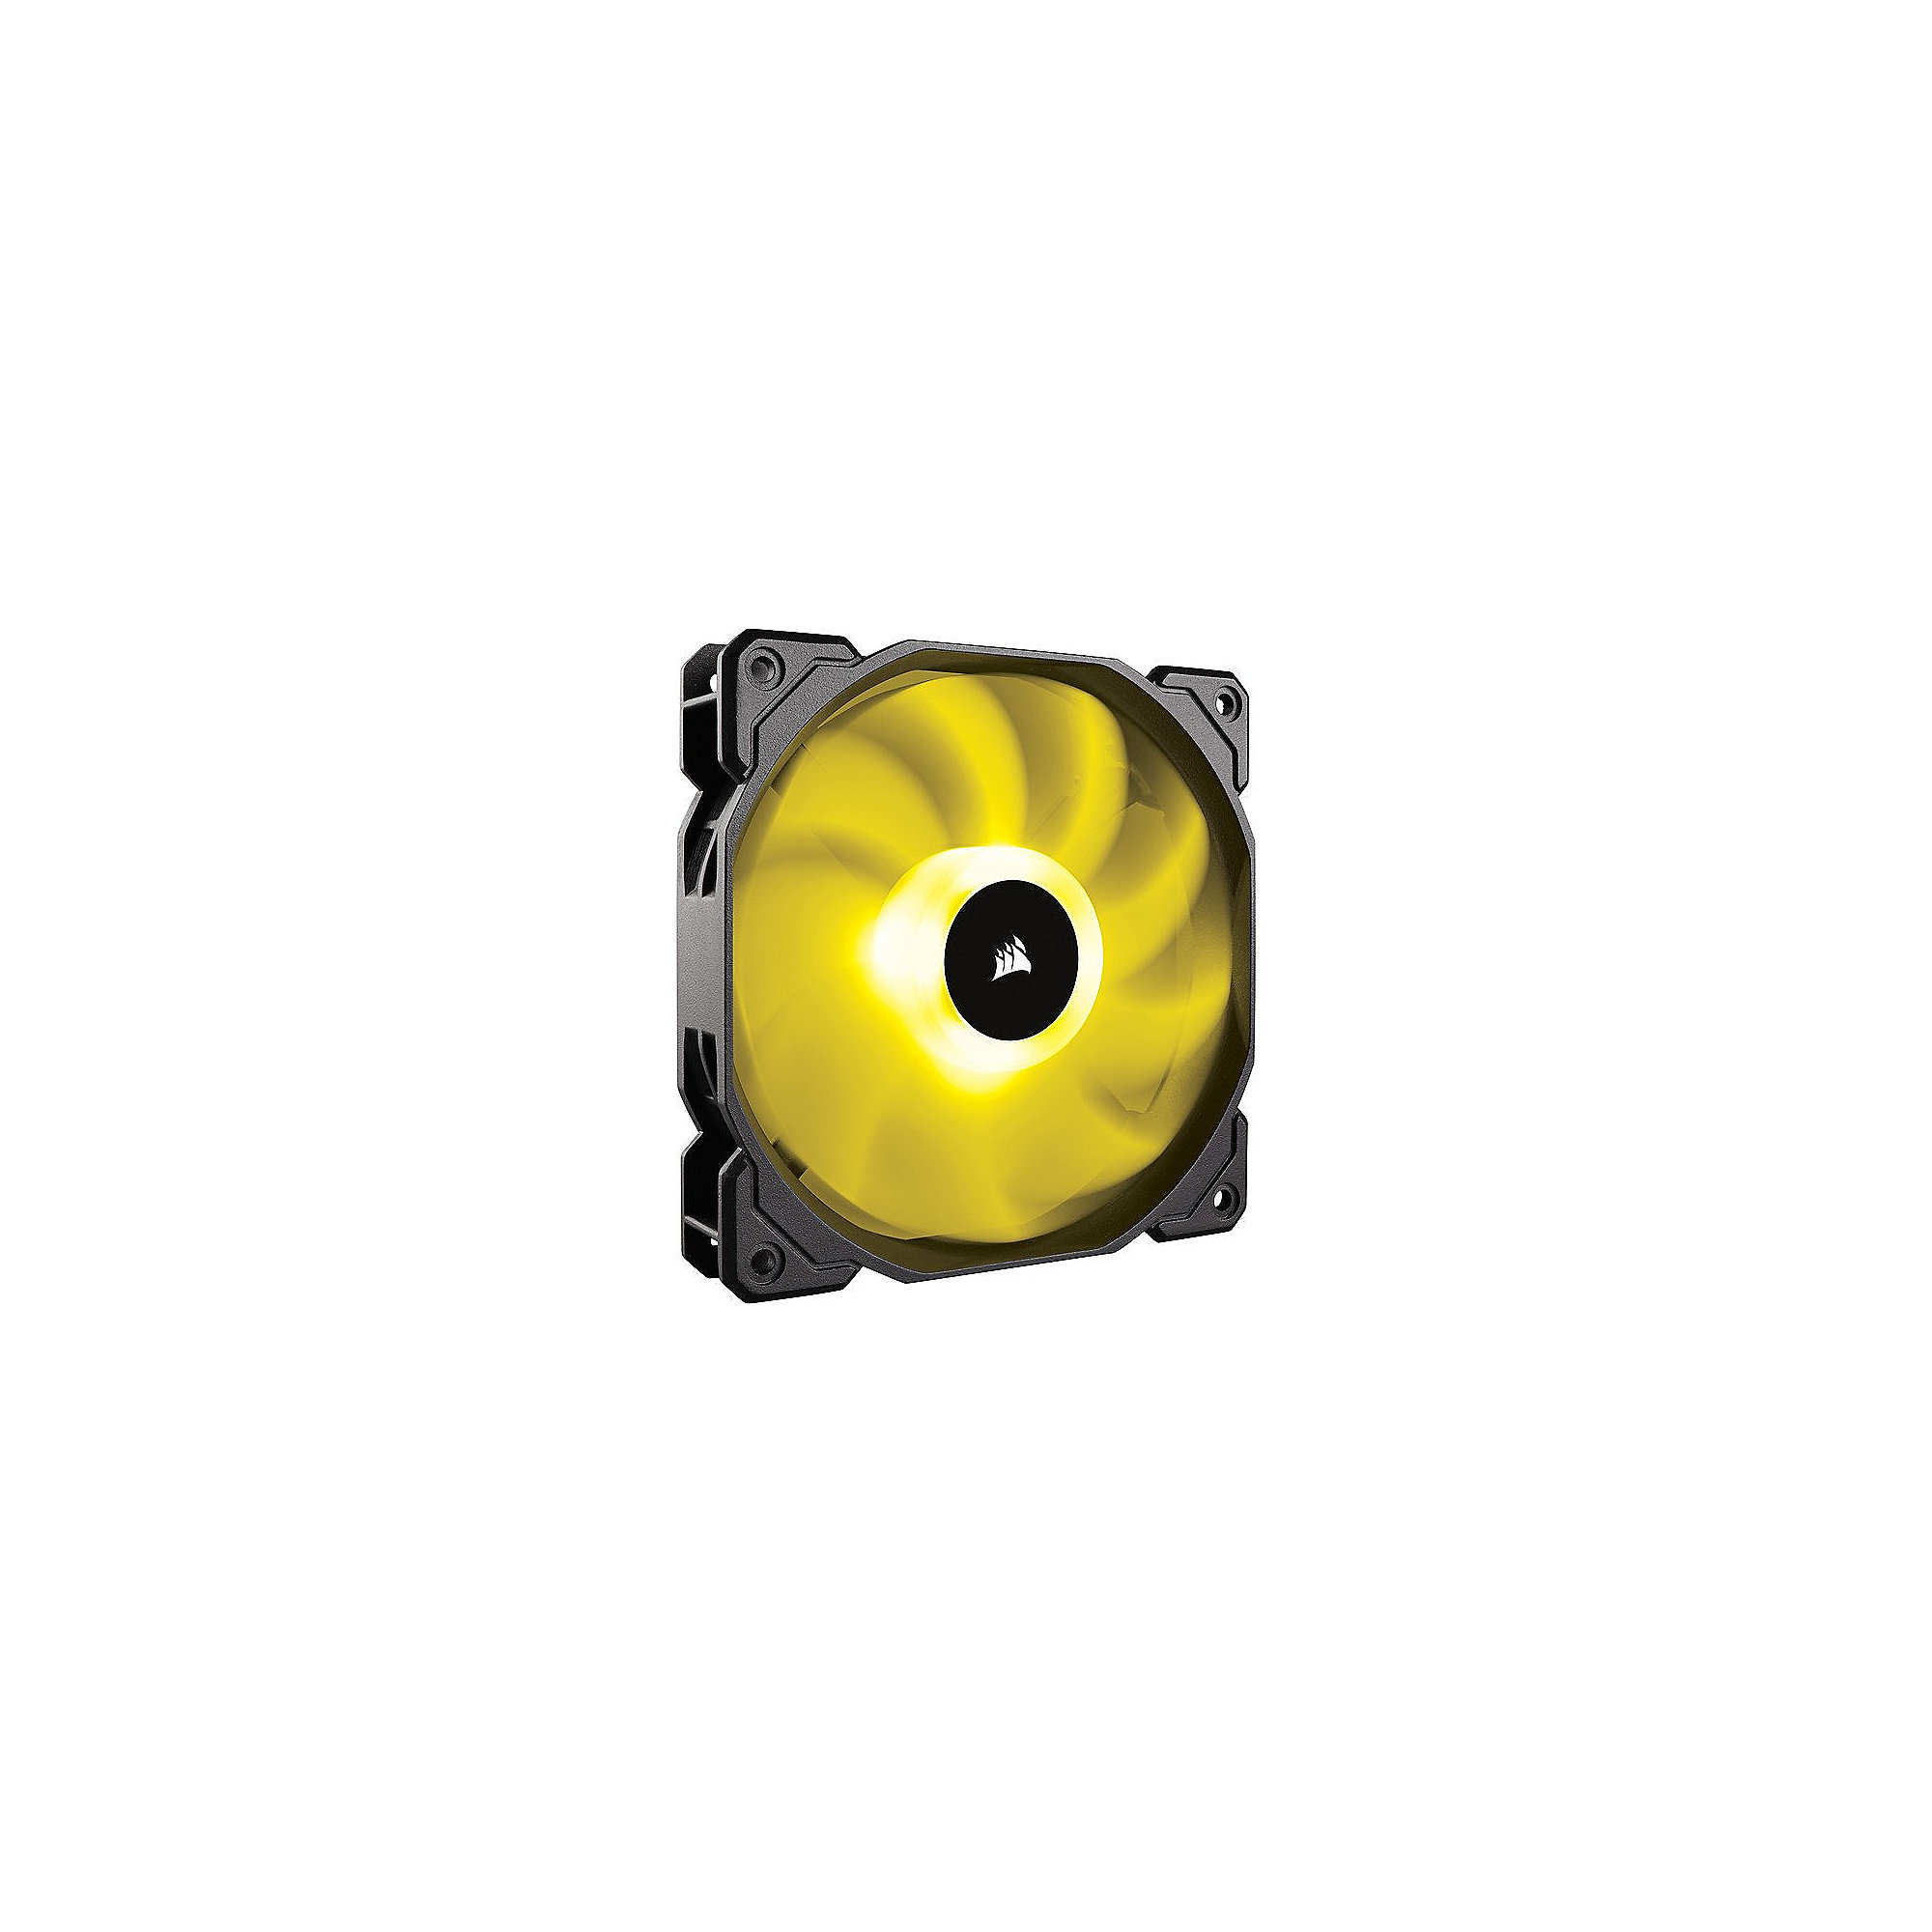 Corsair Air Series SP120 LED RGB Lüfter 120x120x25mm ohne Controller